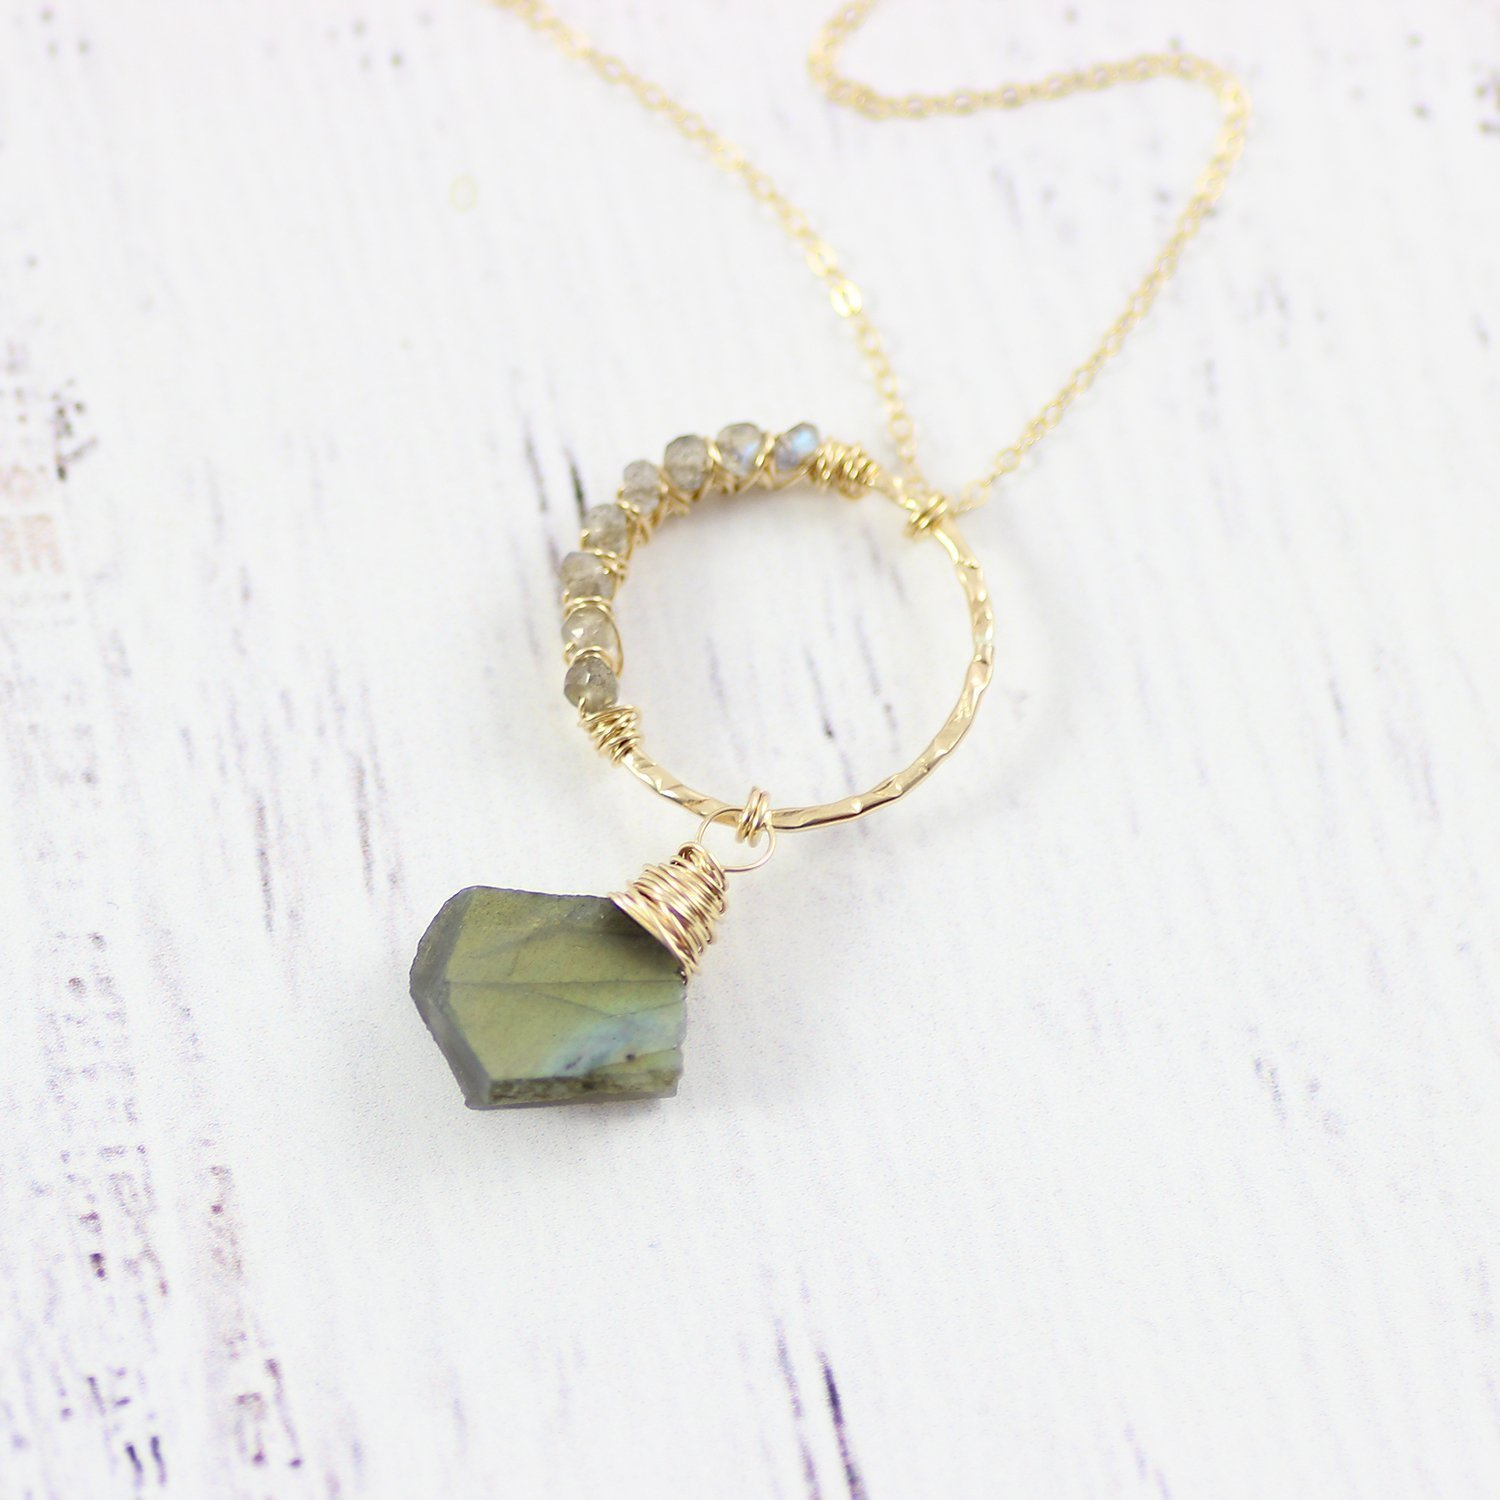 Exclusive for Amazon Prime Members - Labradorite Stone Beaded Pendant Gold Necklace - 16 Length